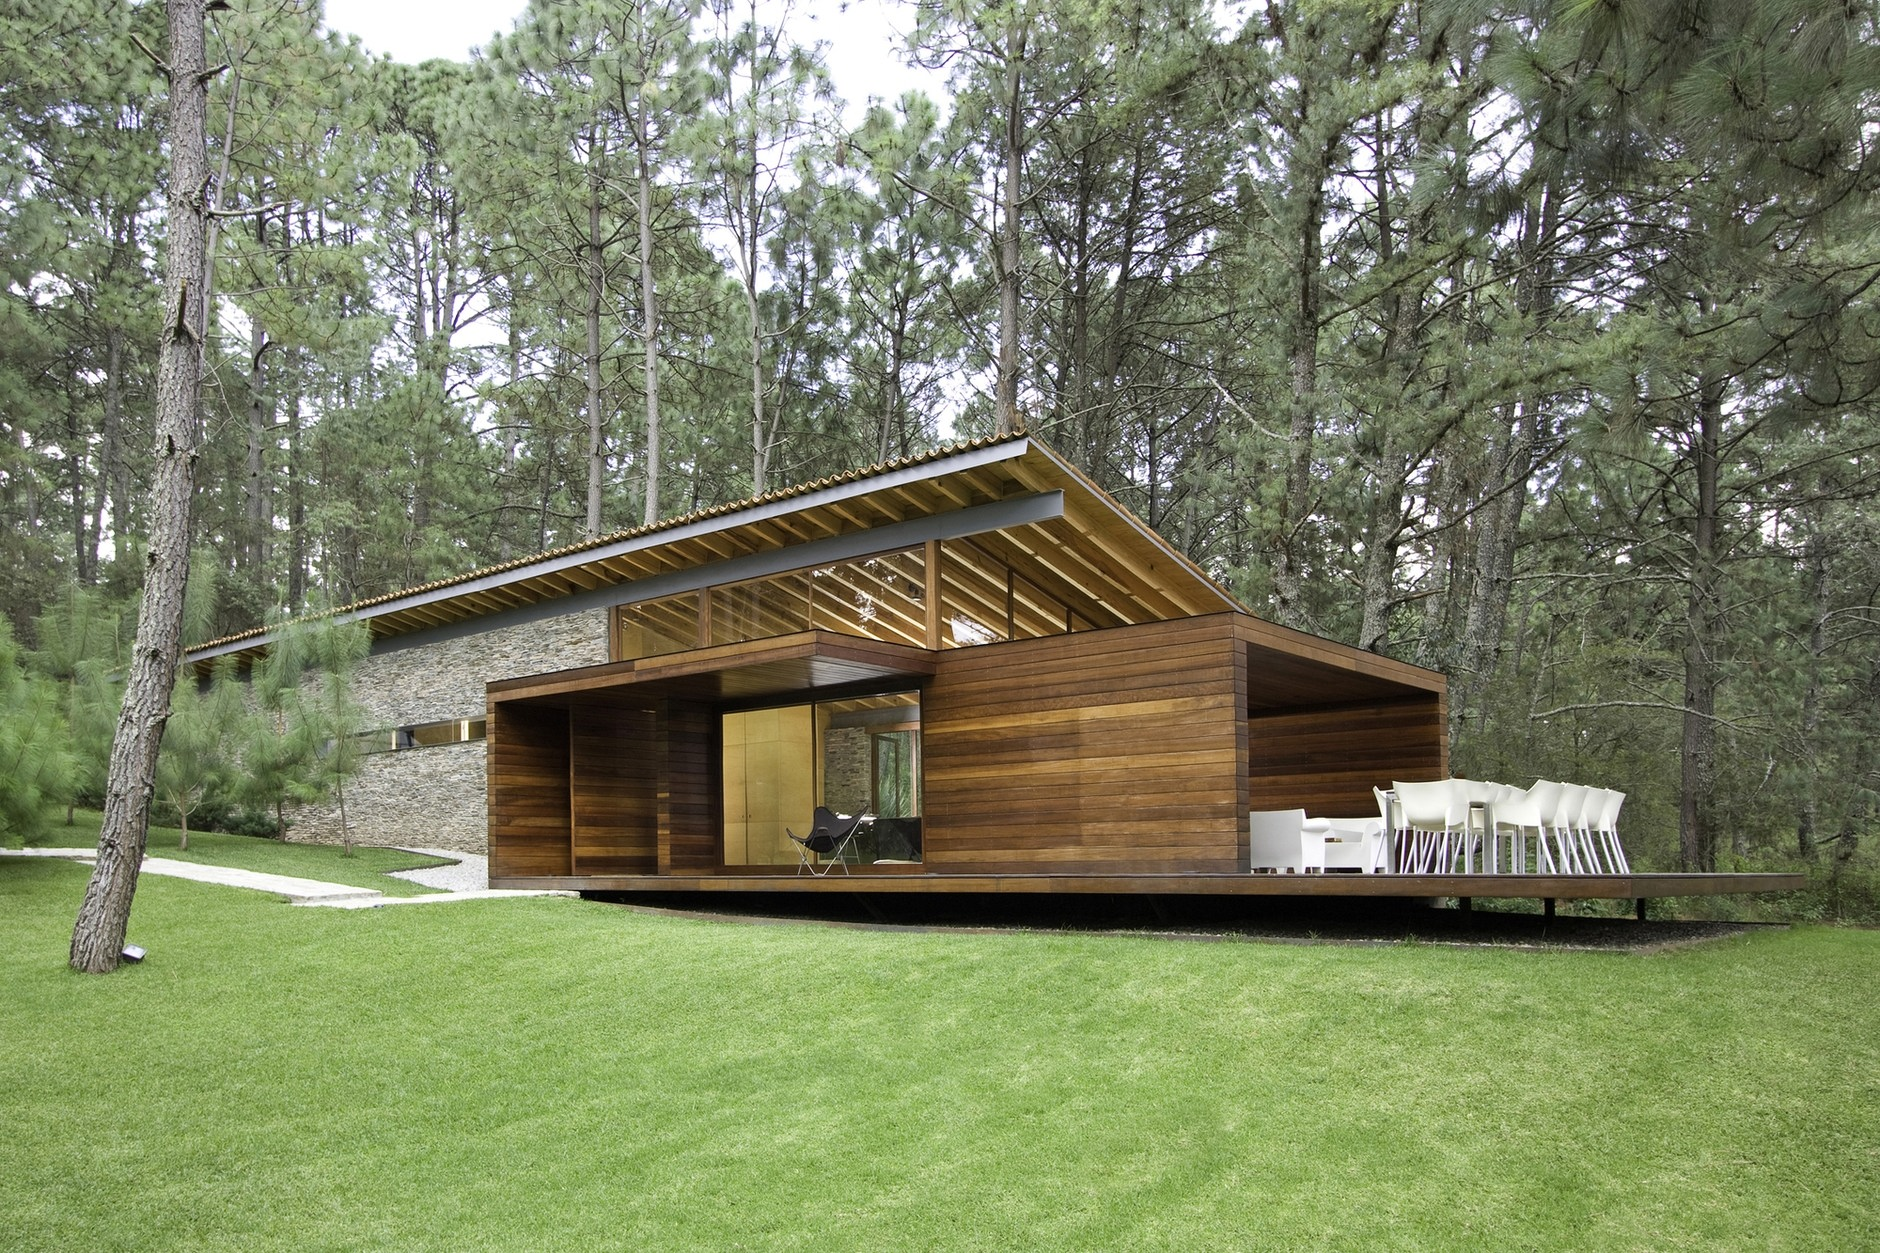 Ro house tapalpa by el as rizo arquitectos karmatrendz for Jardines de casas pequenas